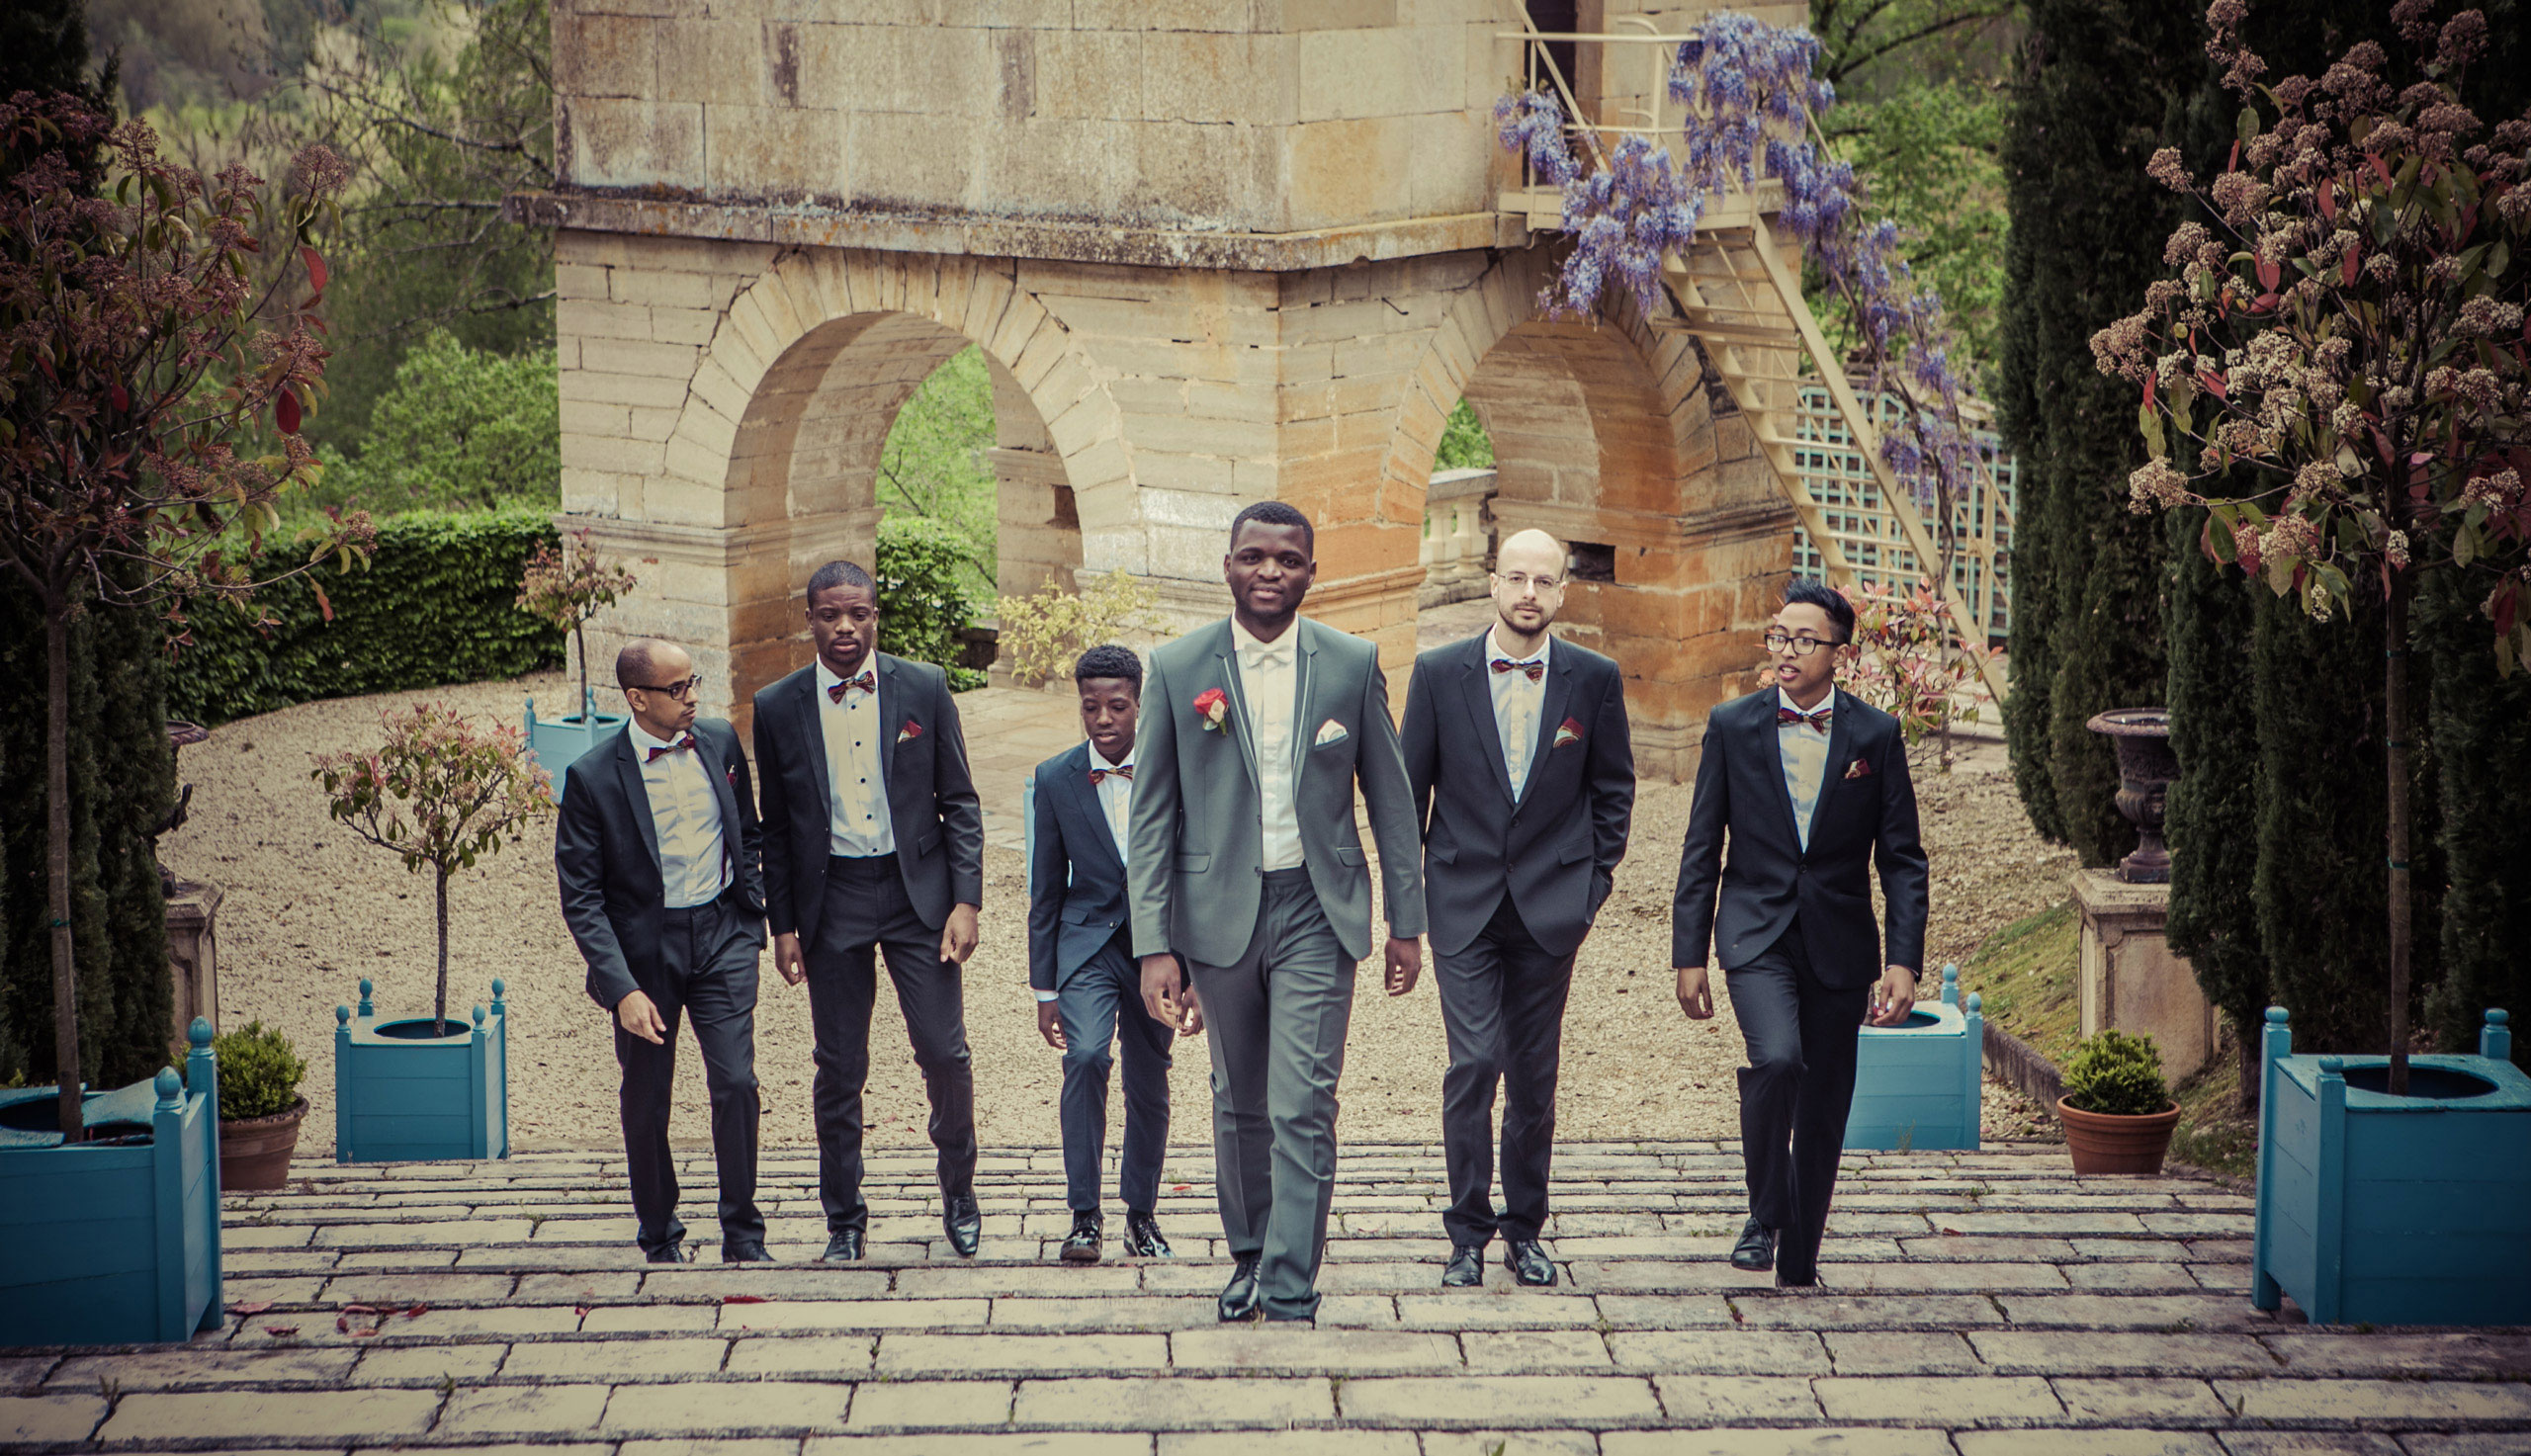 Mariage Photographie Video Aveyron Tarn Toulouse